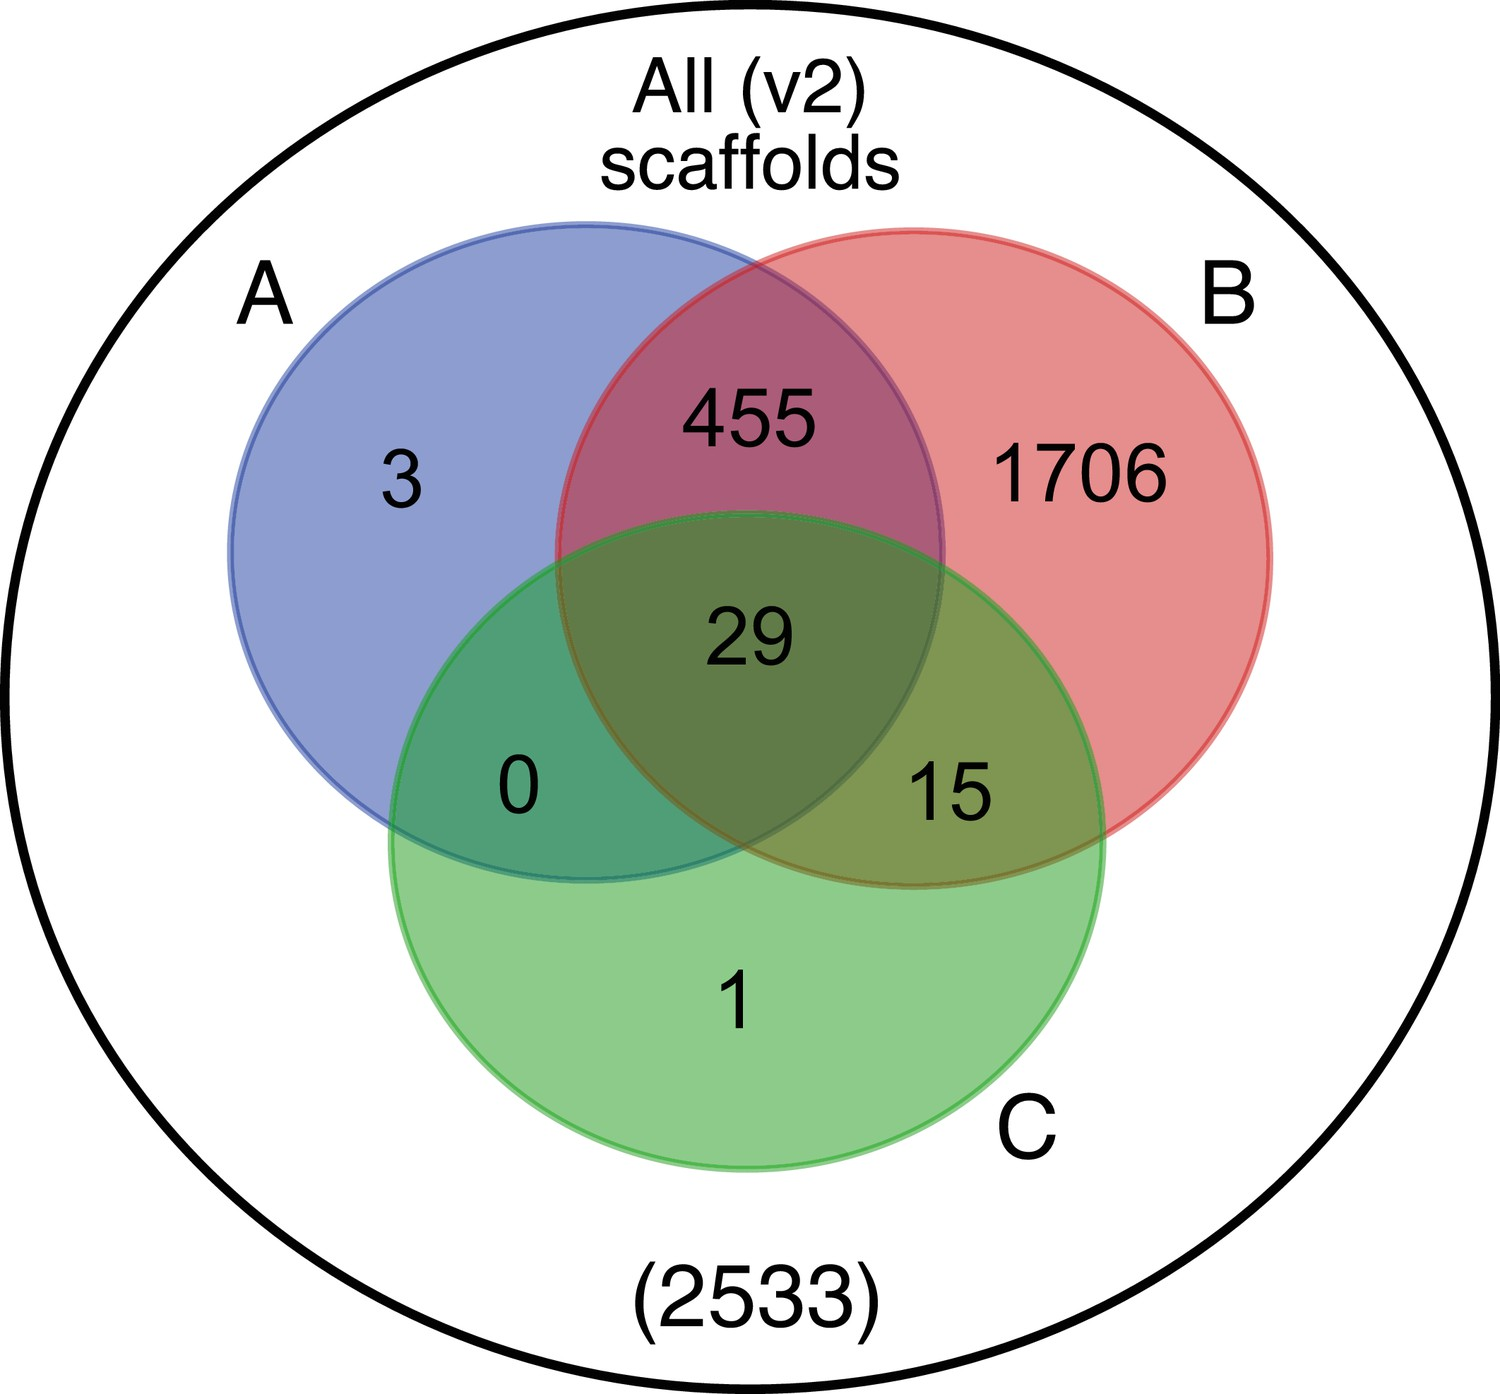 hight resolution of venn diagram representation of blobtools taxonomic annotation filtering approach for ppyr1 2 scaffolds